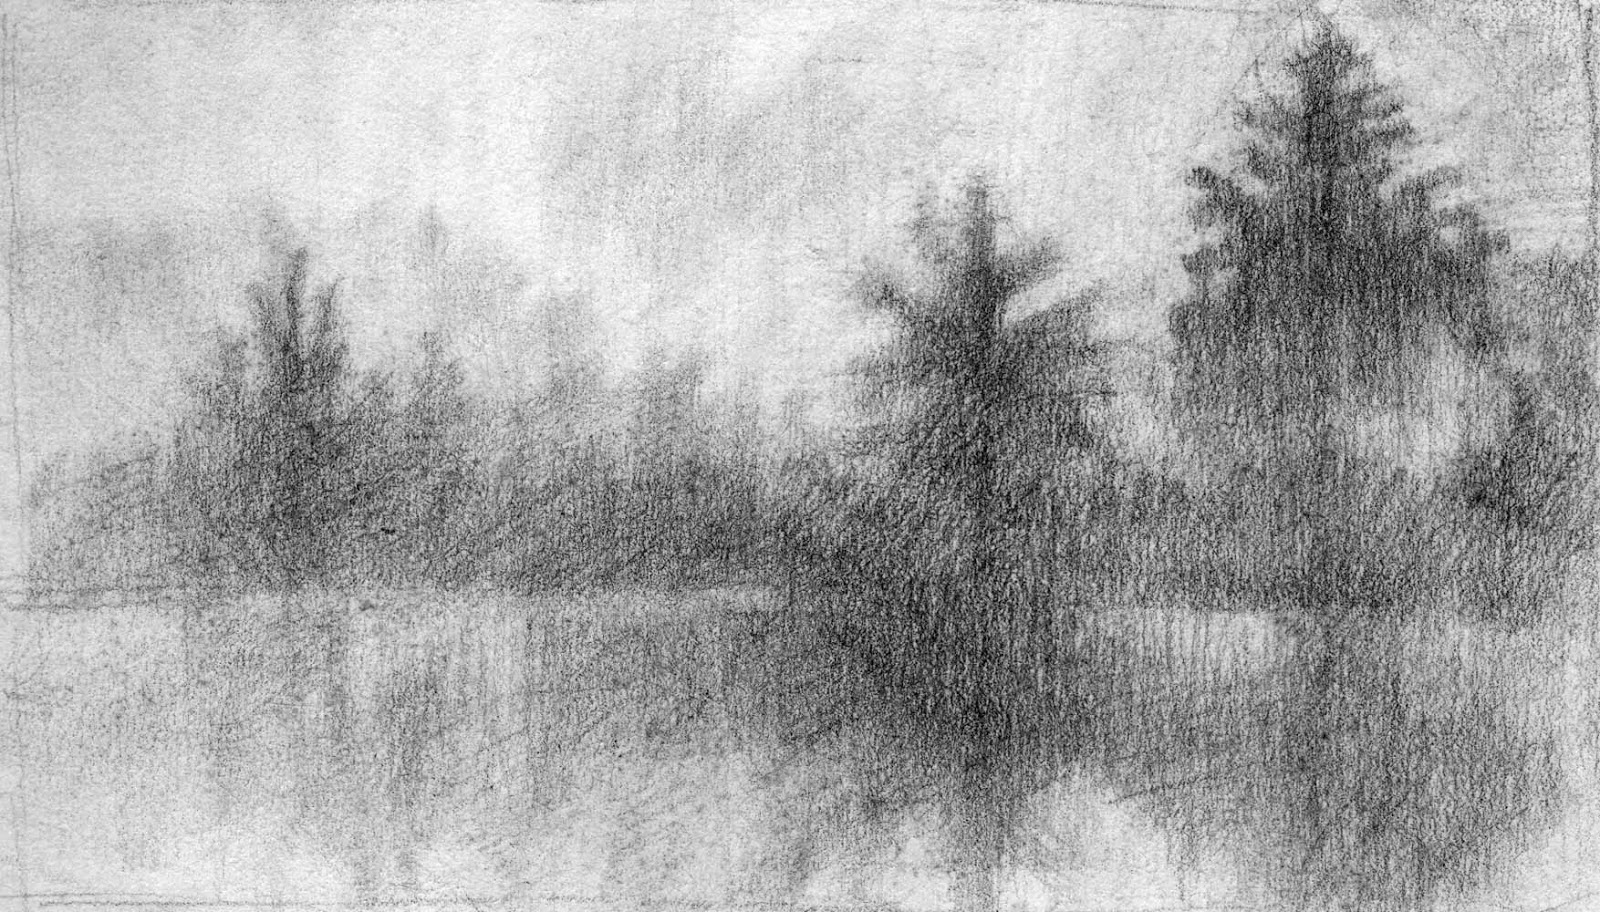 abstracted landscape pencil drawing three trees artist janine aykens